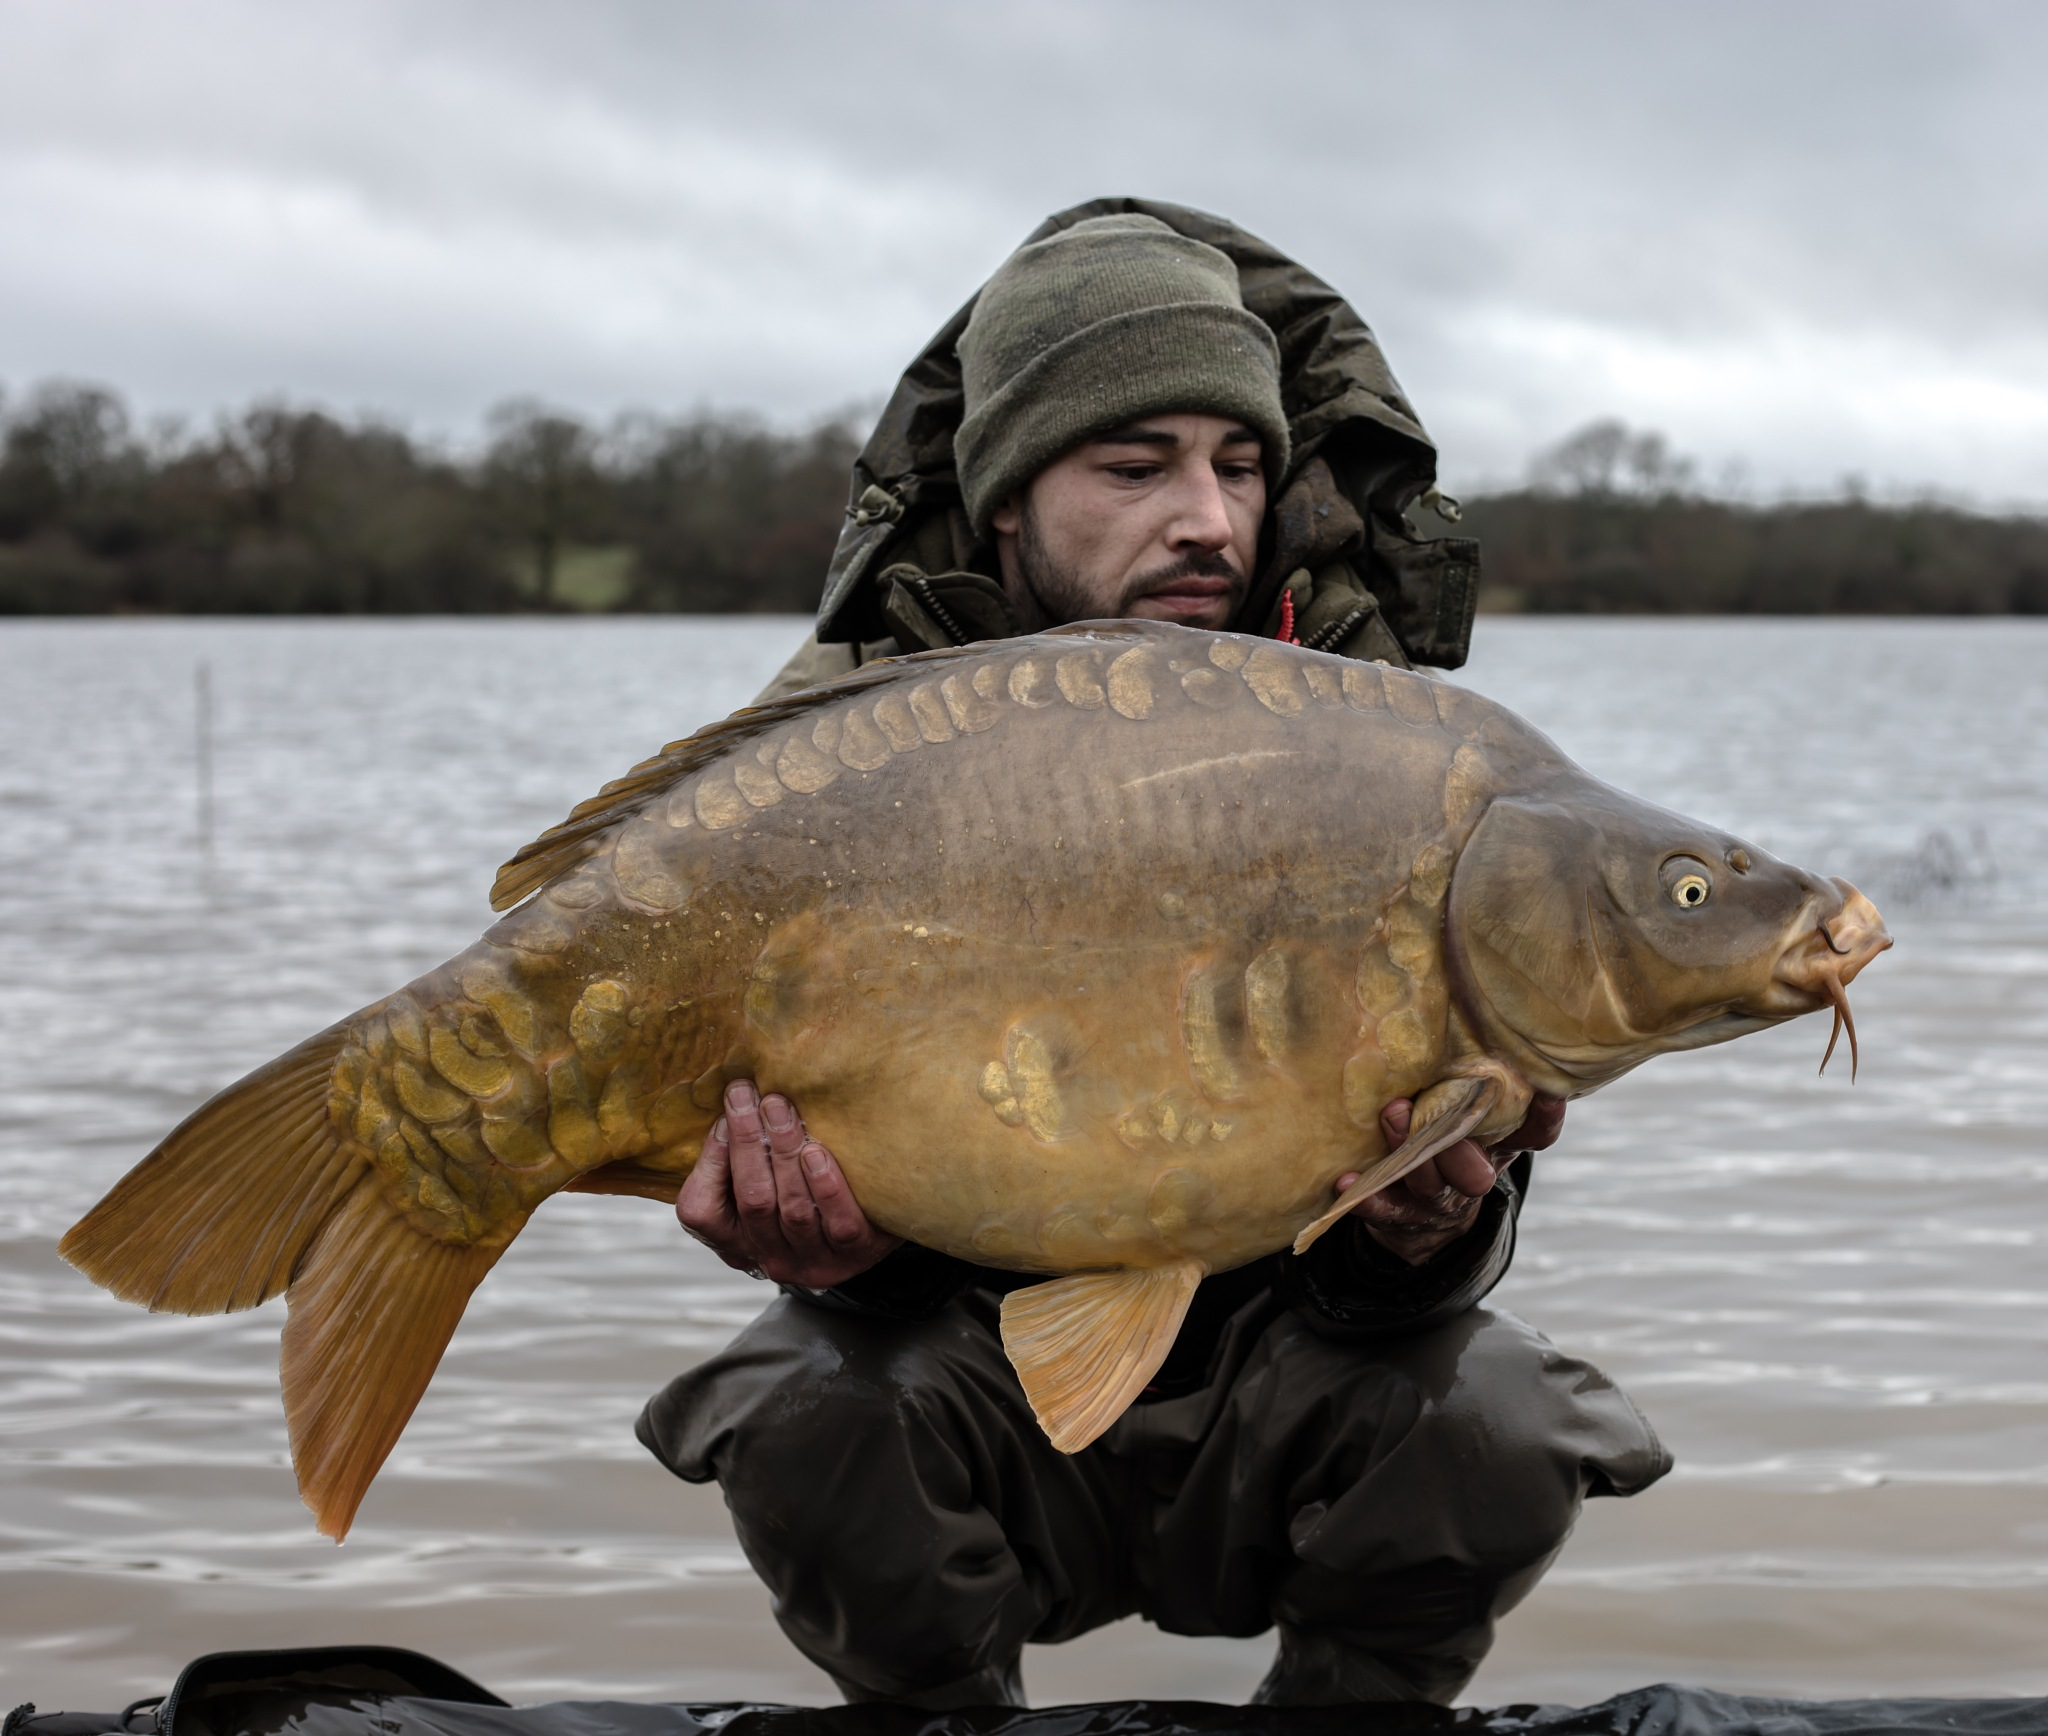 Carp fishing by Kevin Noulet